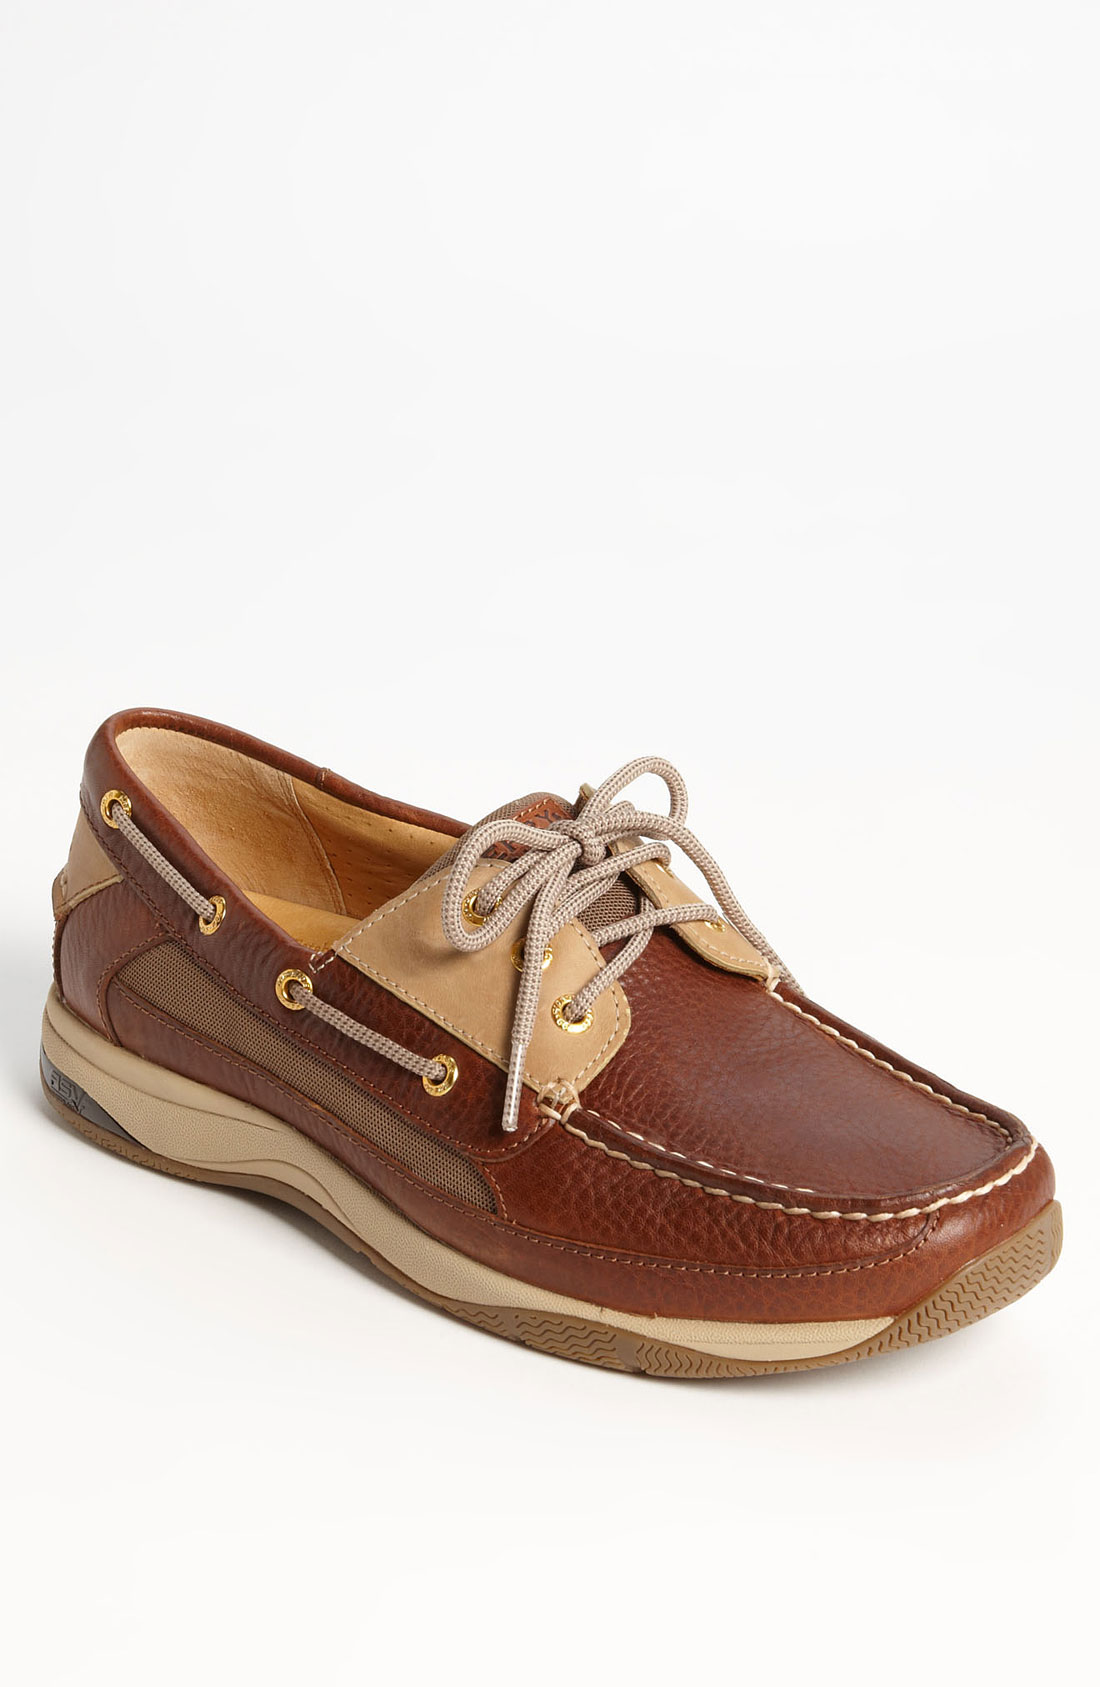 Sperry Gold Cup A/O Honeycomb Boat Shoes (For Women) |Sperry Gold